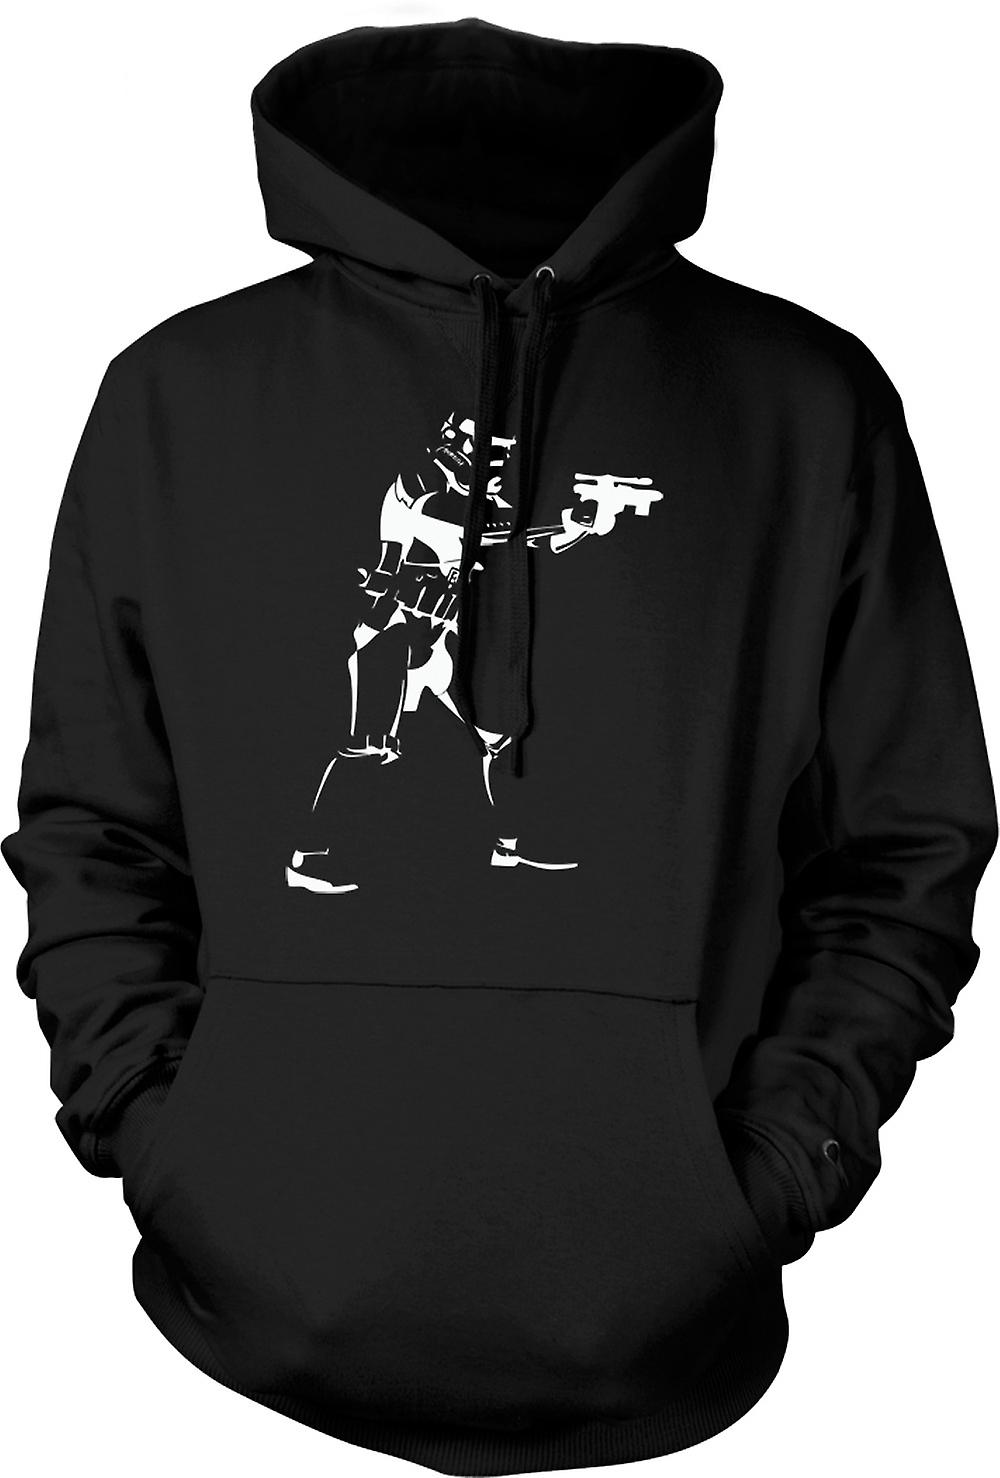 Mens Hoodie - Star Wars - Storm Trooper - Pop Art